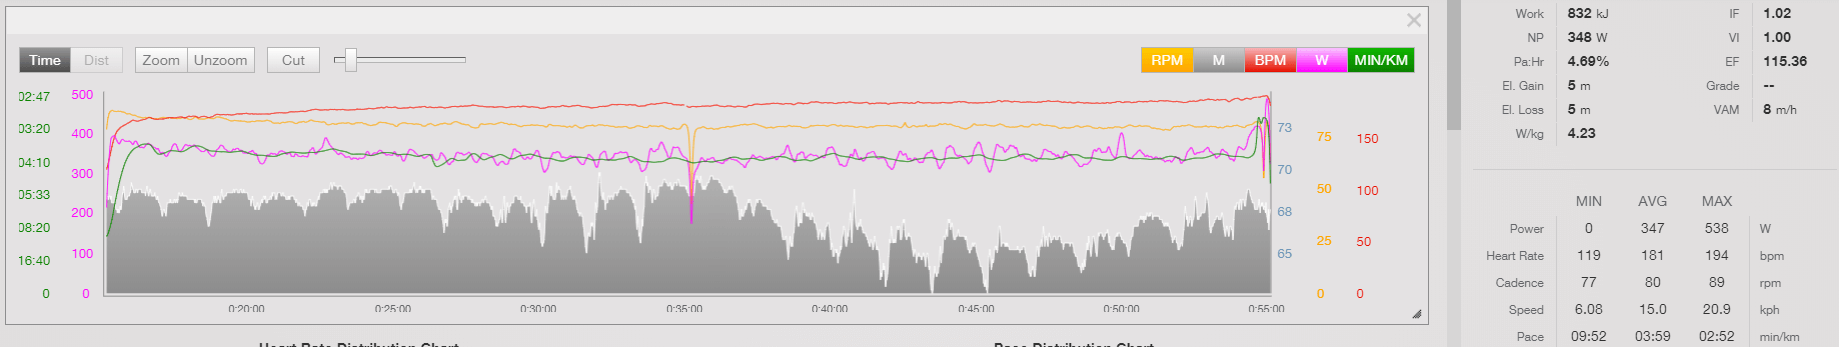 Take 5 Minutes Off Your 10k Run Personal Best in 9 Weeks: A Case Study